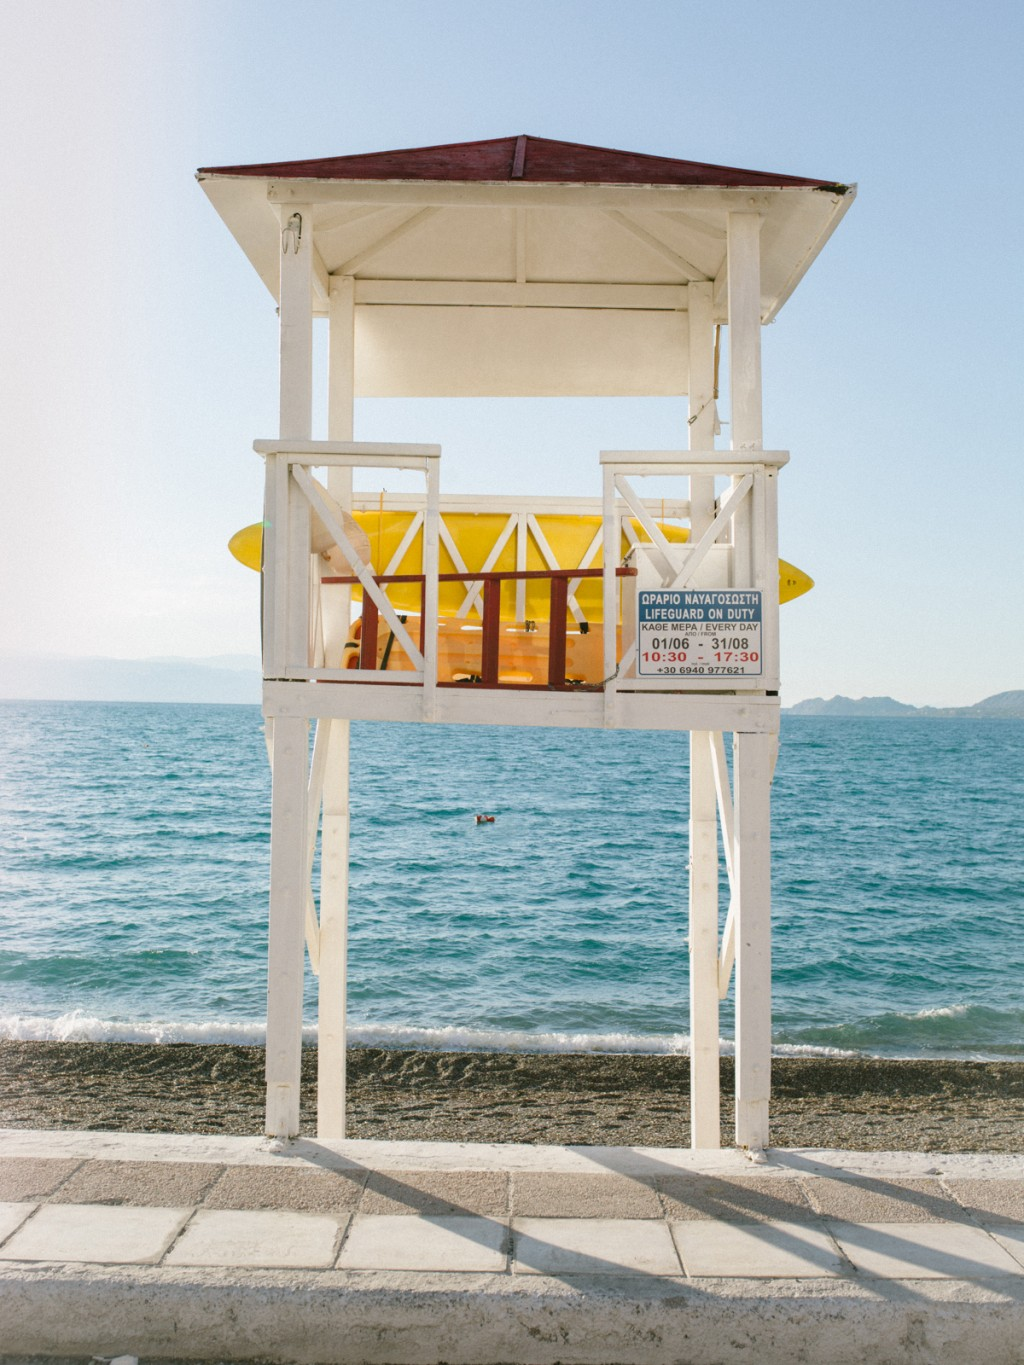 BENJAMIN MARKSTEIN There is a little bit of yellow in Greece